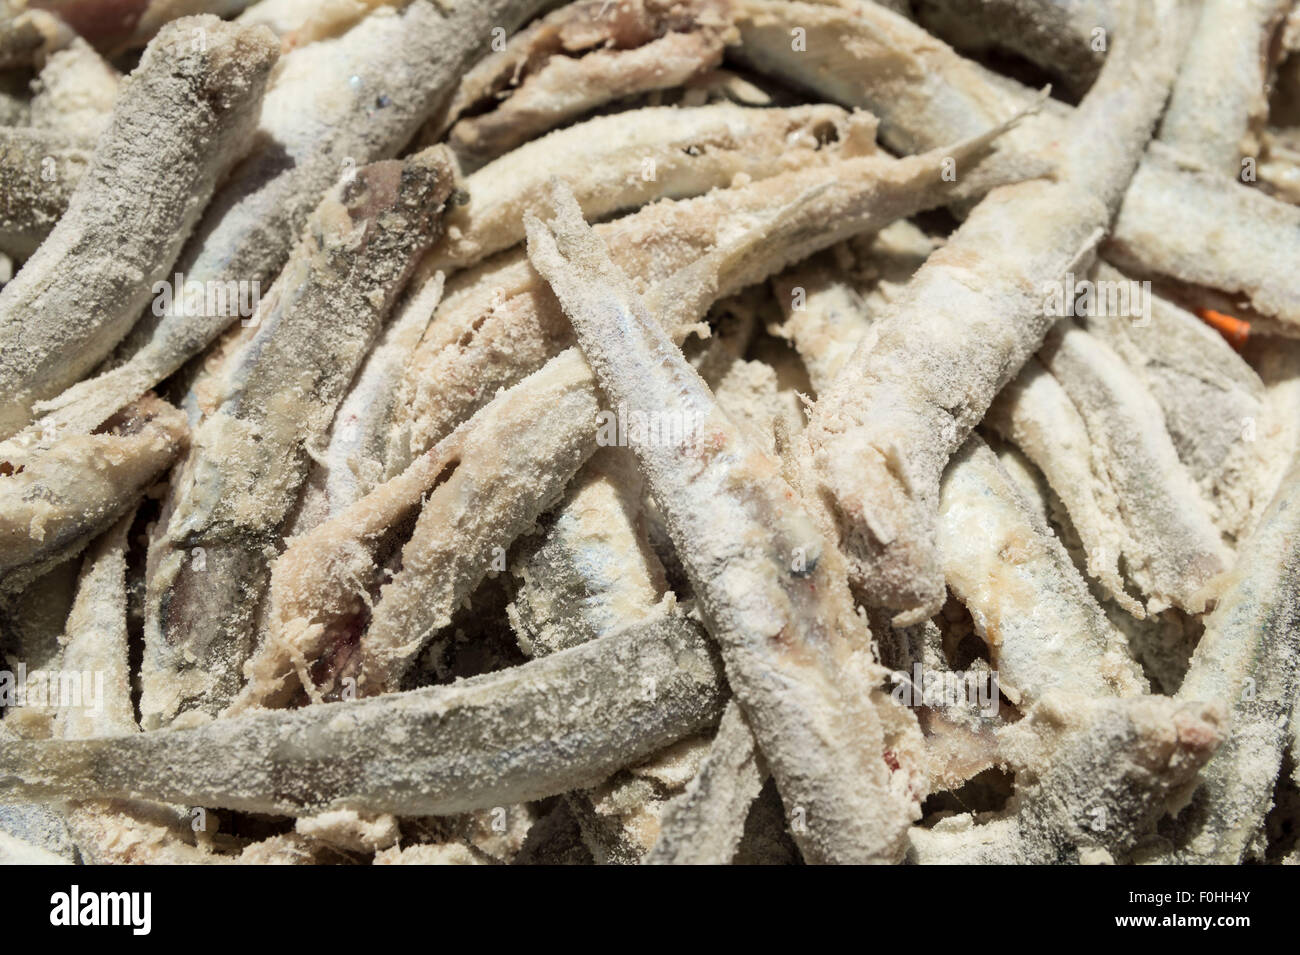 Simply food ,simply cooking - anchovies cleaned and sprinkled with flour - Stock Image